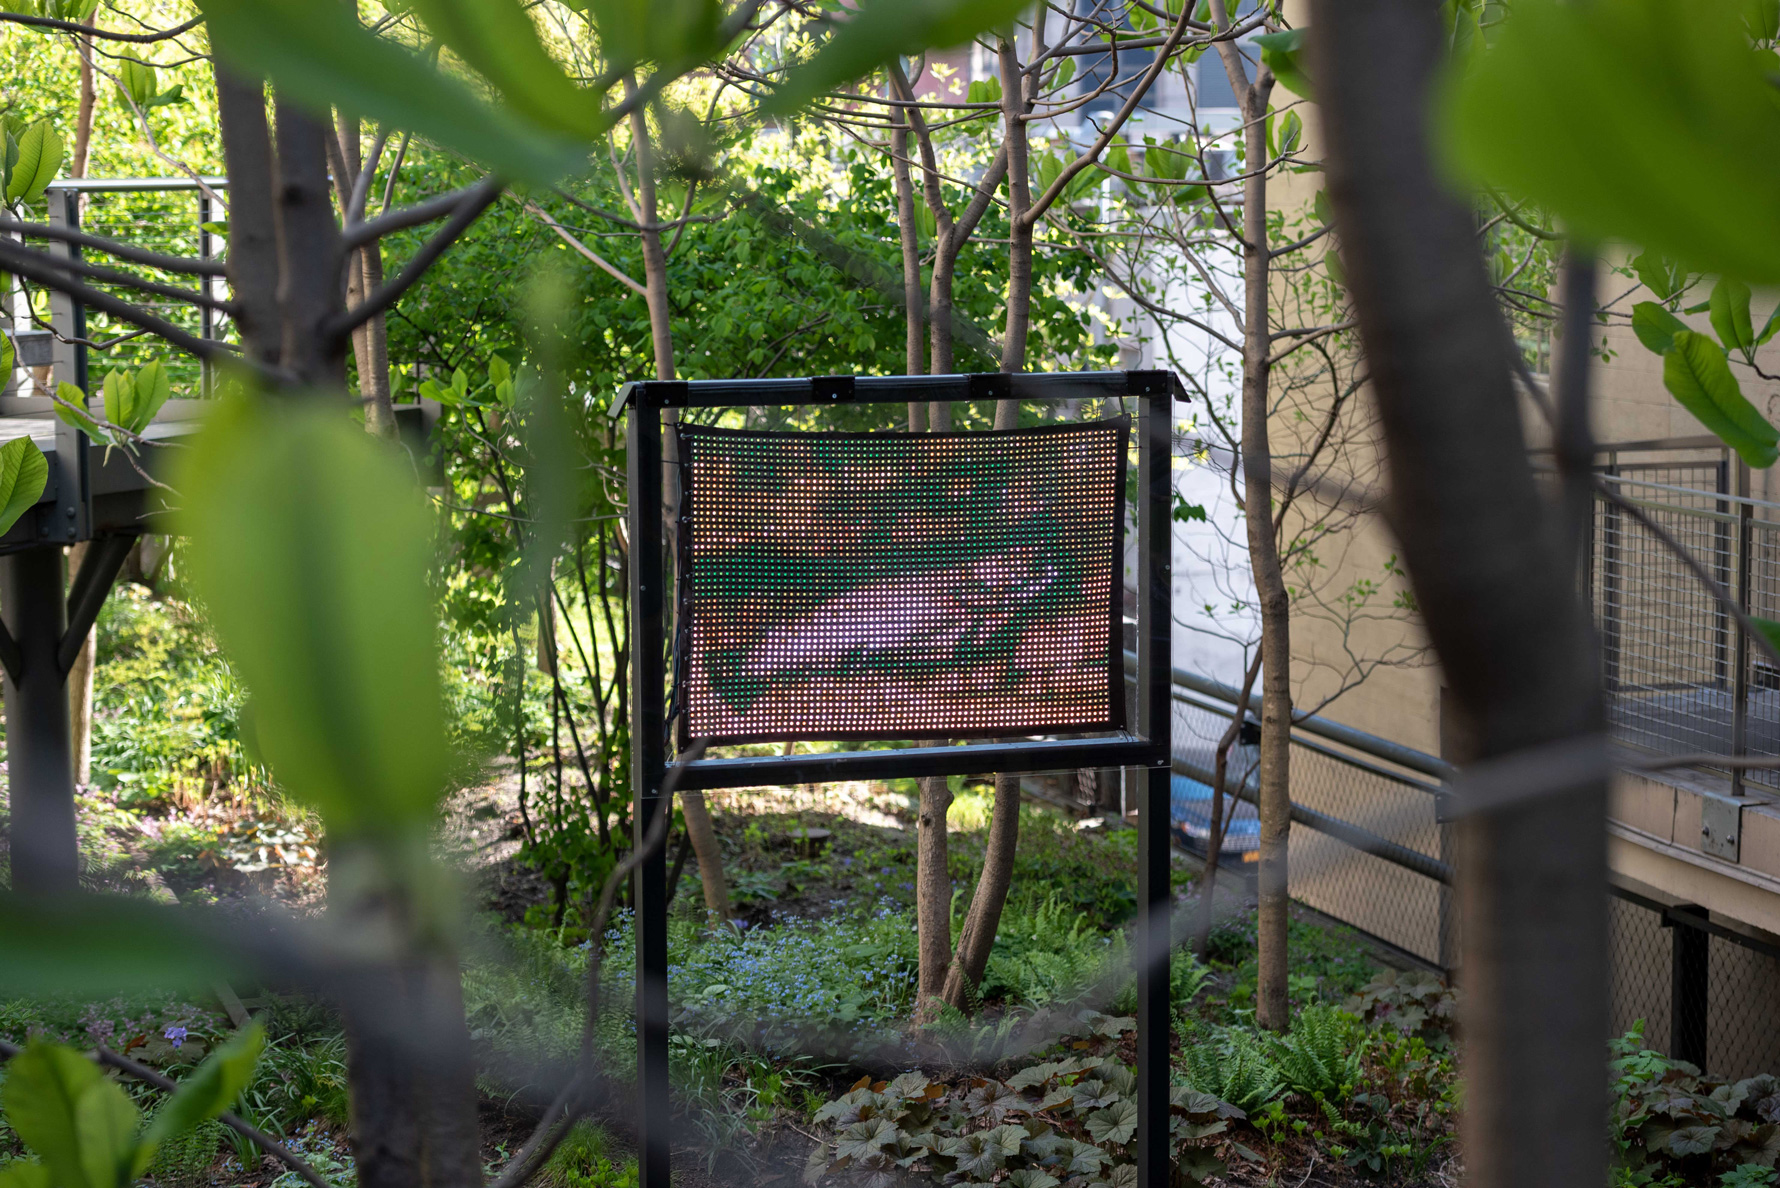 Ei Arakawa, <i>IN VINCULIS FACIEBAT (Gustave Courbet, La truite, 1873)</i>, 2019, an image of a trouth in one of the High Line gardens